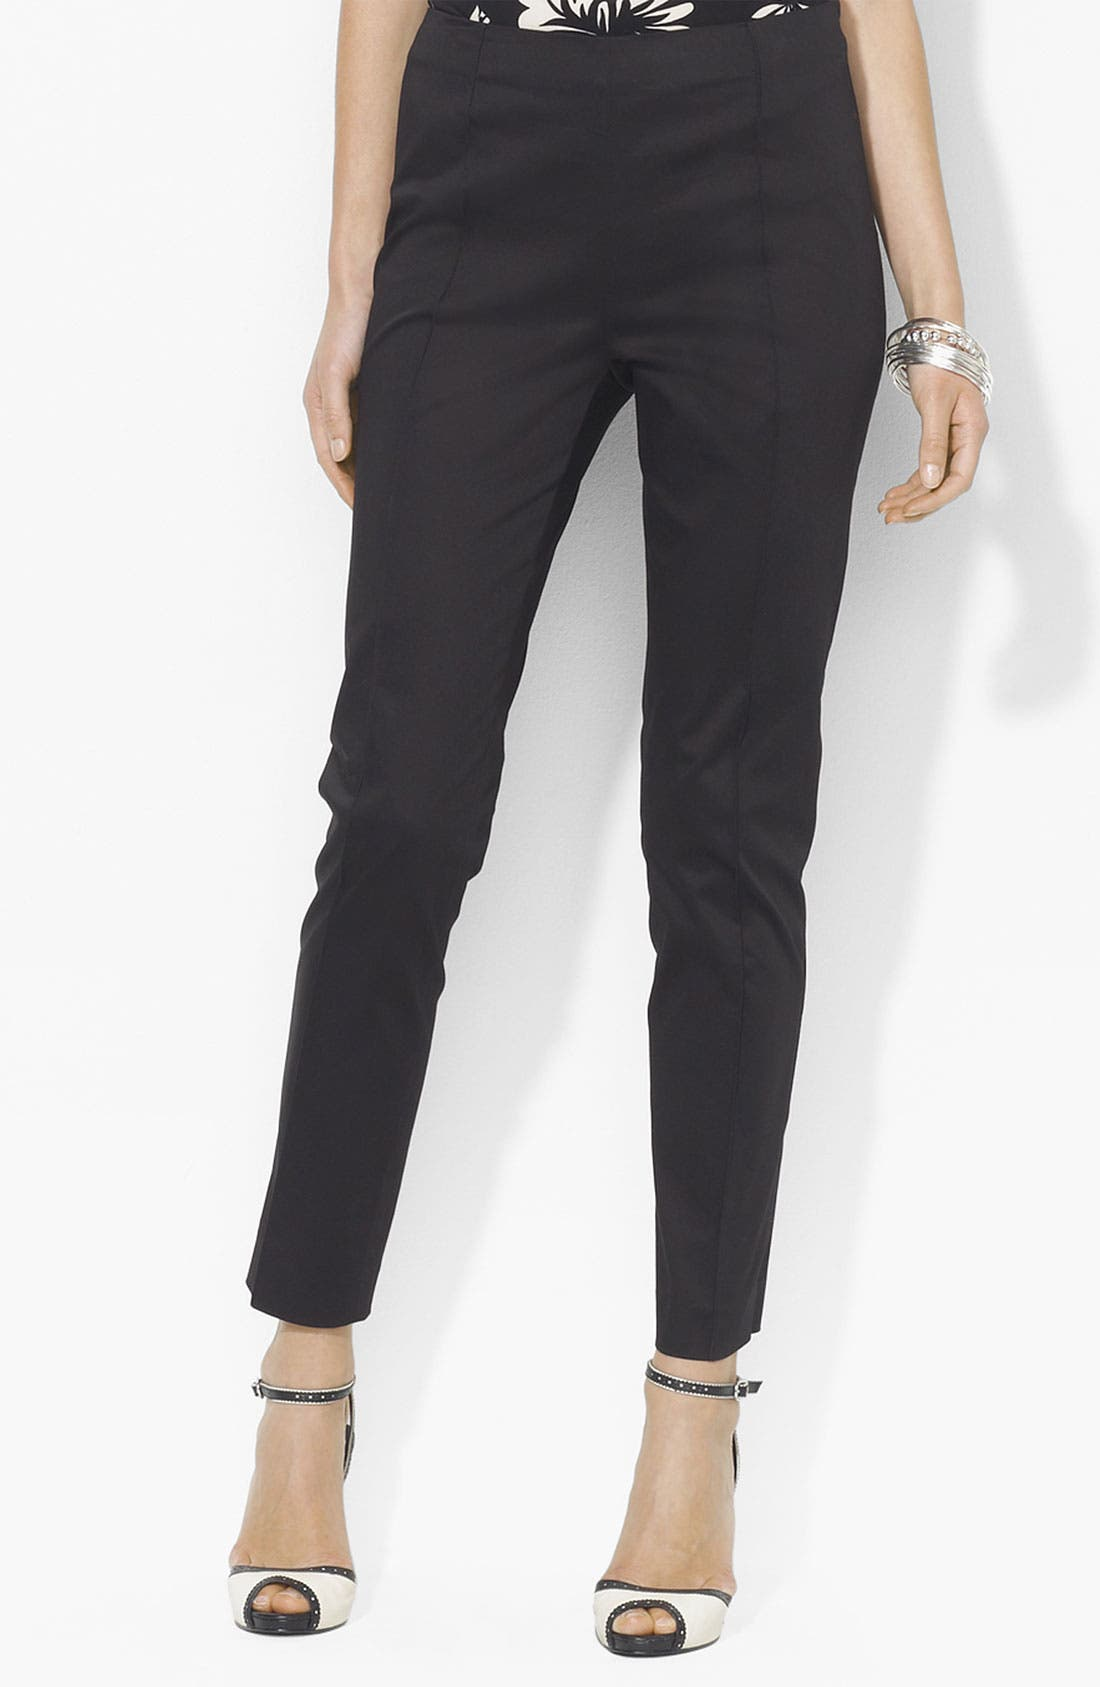 Main Image - Lauren Ralph Lauren Side Zip Ankle Pants (Petite) (Online Exclusive)